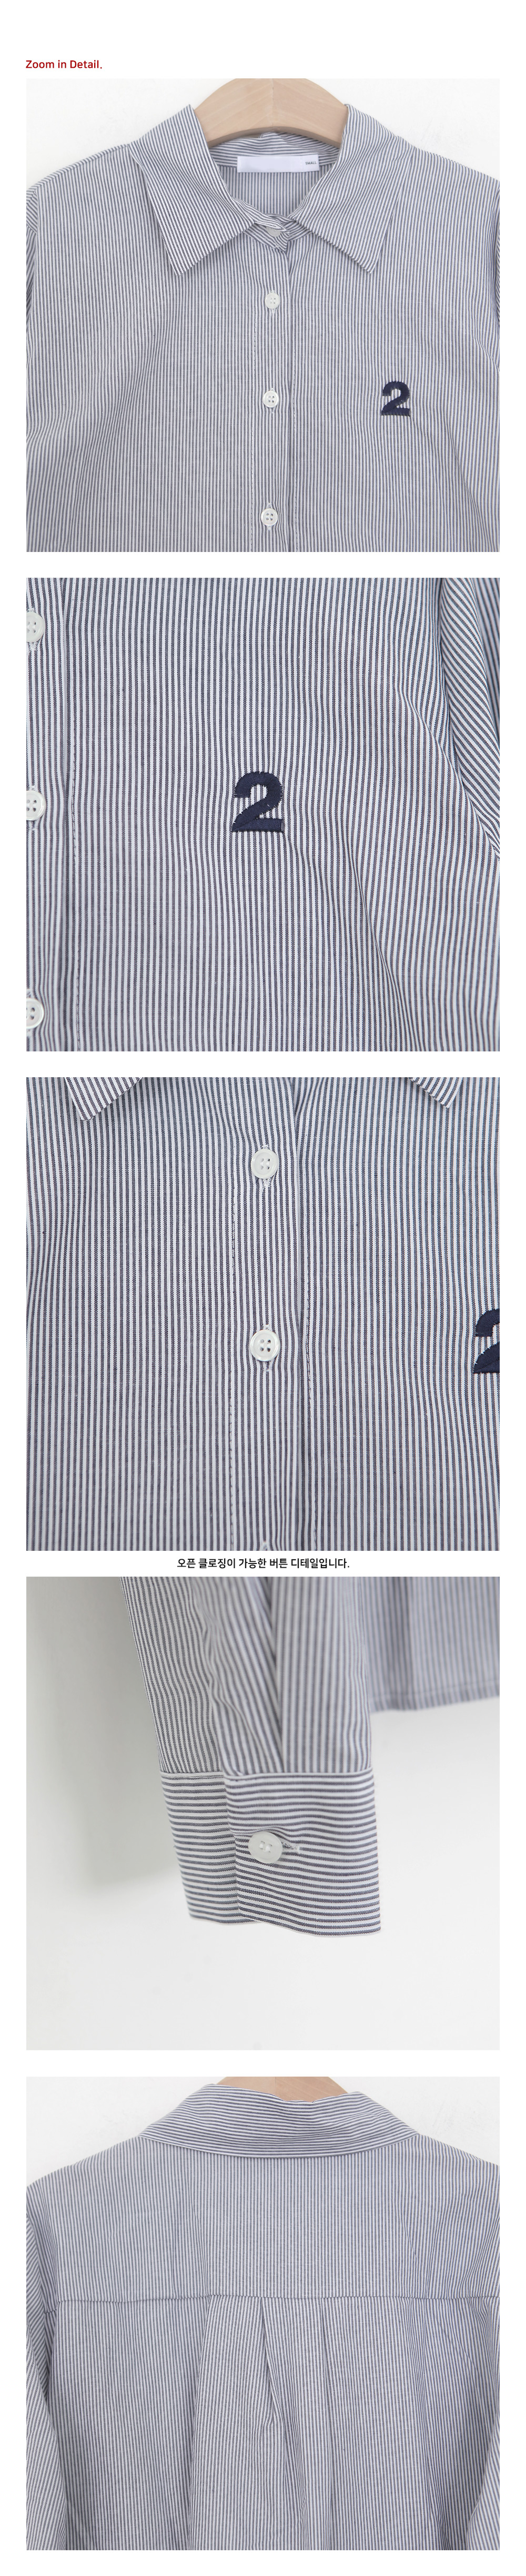 SALE) 2 embroidery point cotton shirts